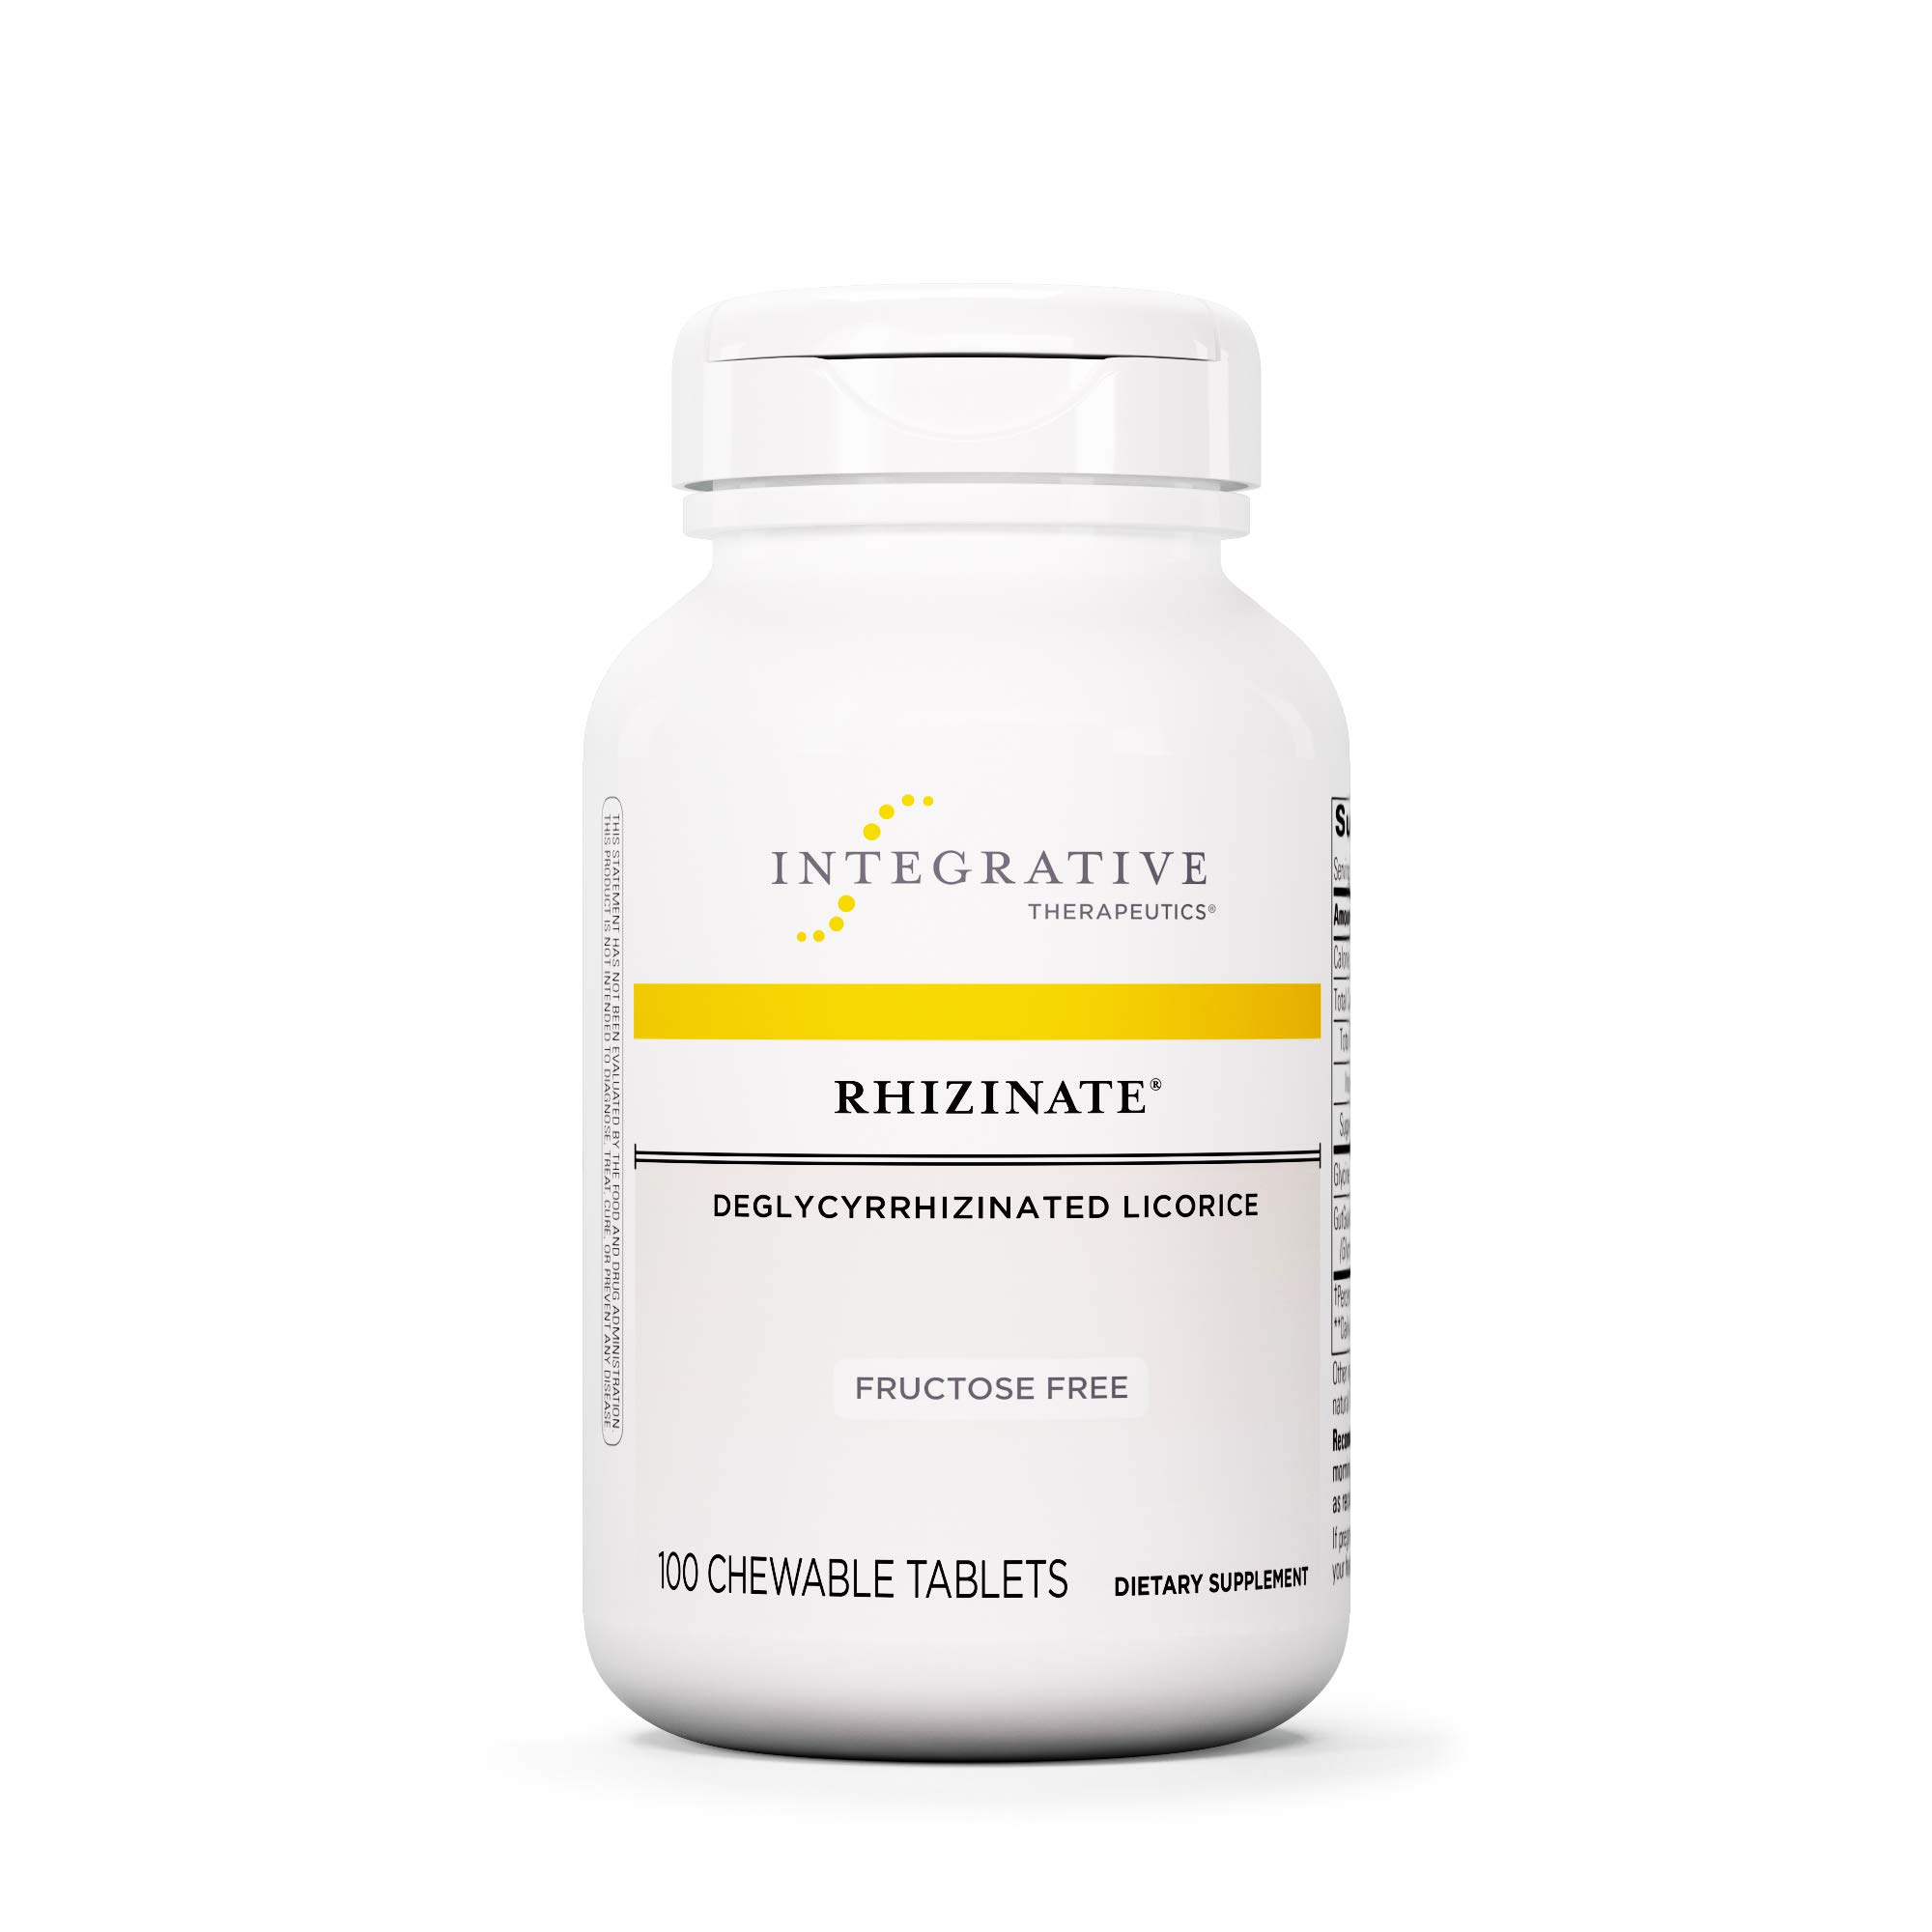 Integrative Therapeutics - Rhizinate, Fructose Free - Deglycyrrhizinated Licorice (DGL) - Suppot Stomach and Intestinal Relief - Original Licorice Flavor - 100 Chewable Tablets by Integrative Therapeutics